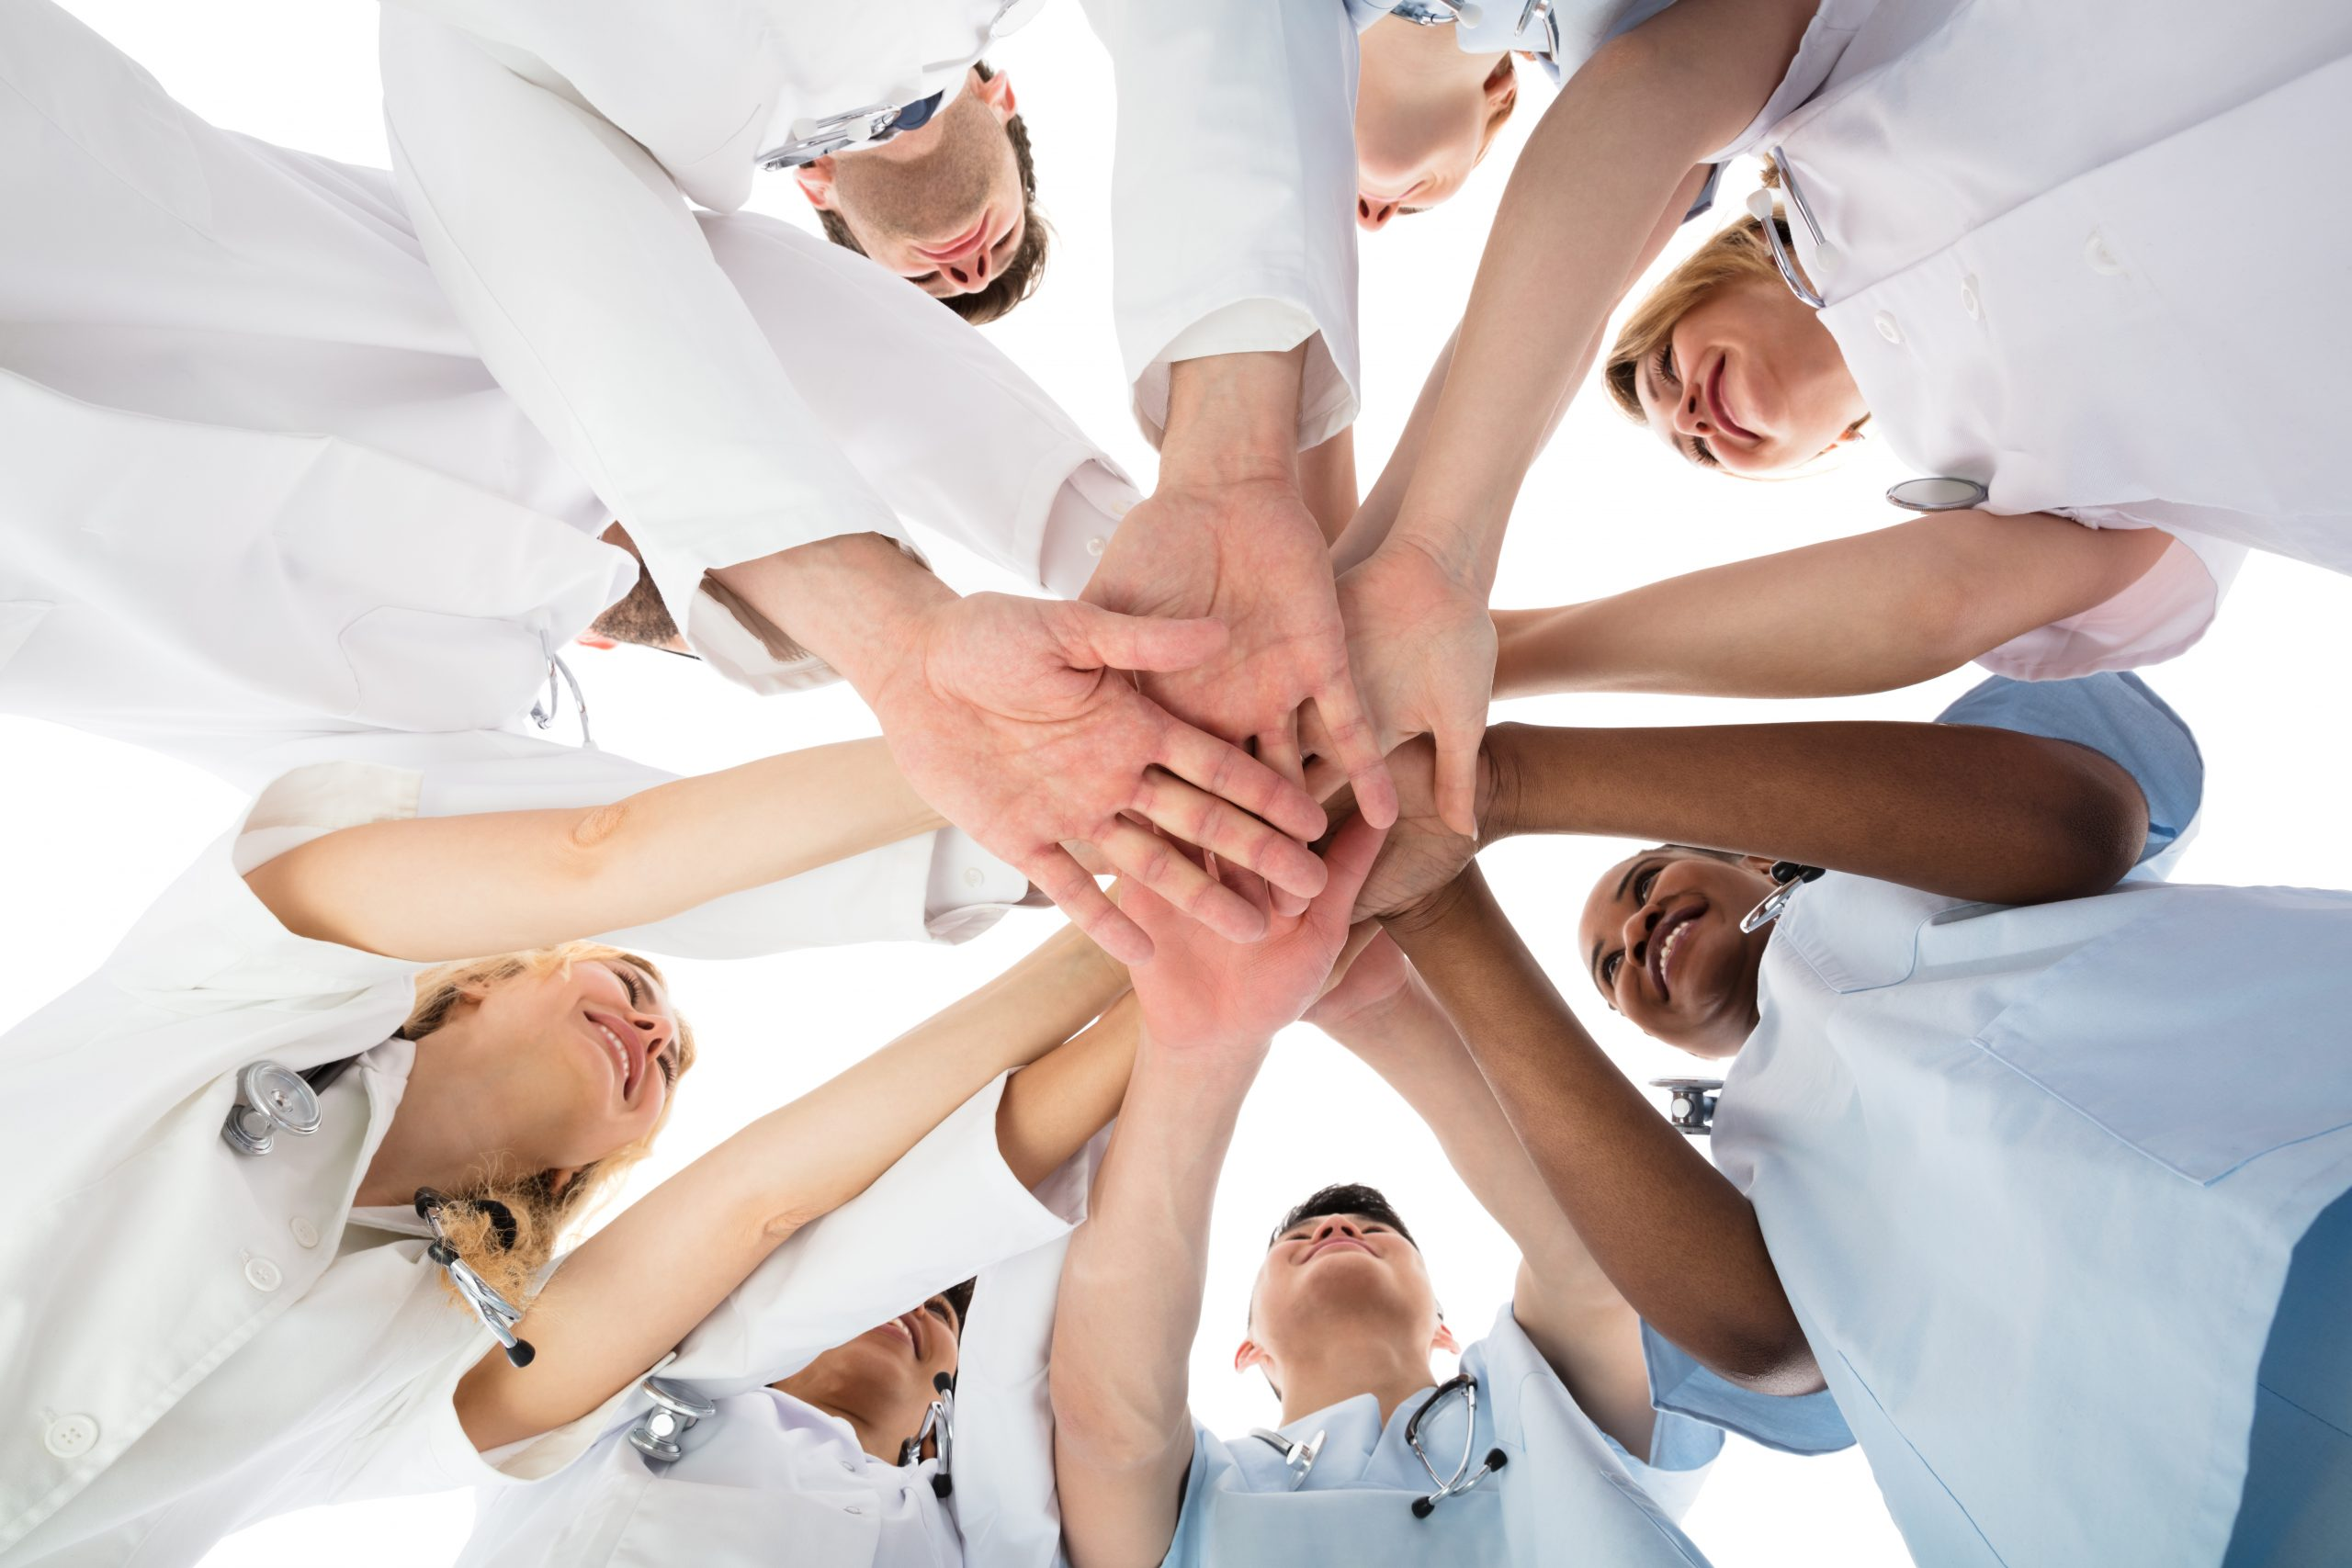 Collaboration in Healthcare